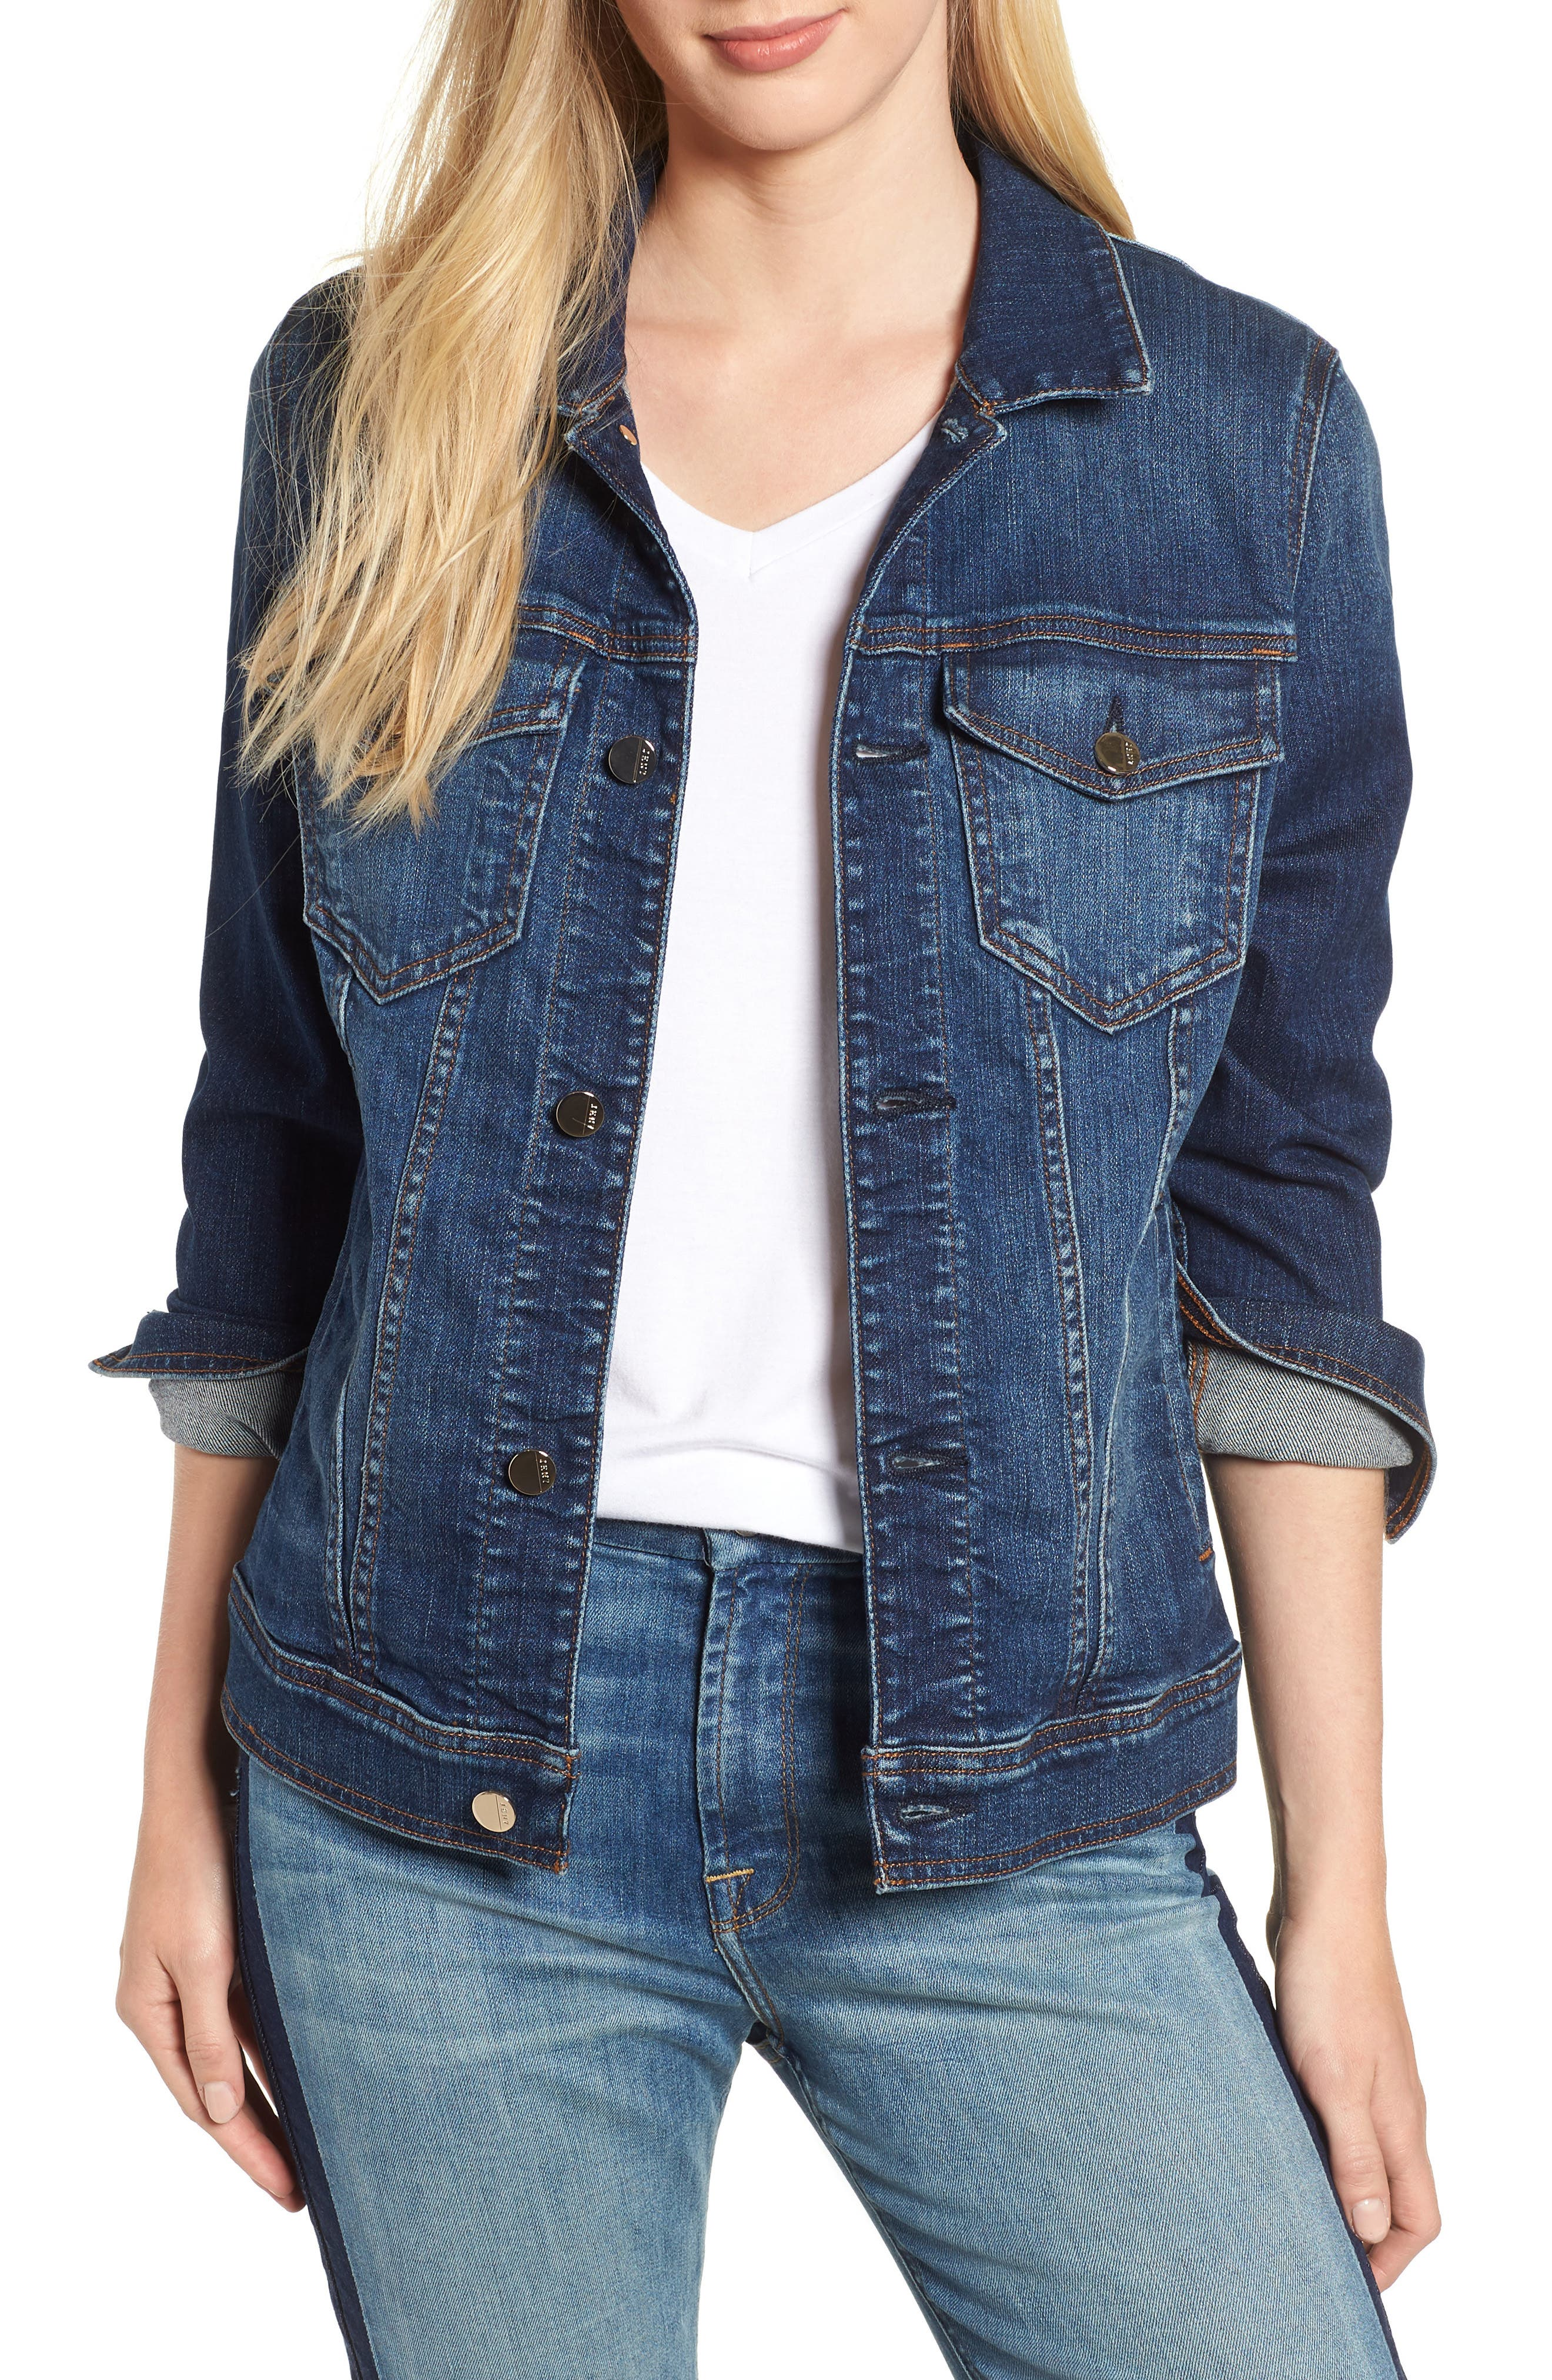 JEN7 BY 7 FOR ALL MANKIND Classic Denim Jacket, Main, color, 403